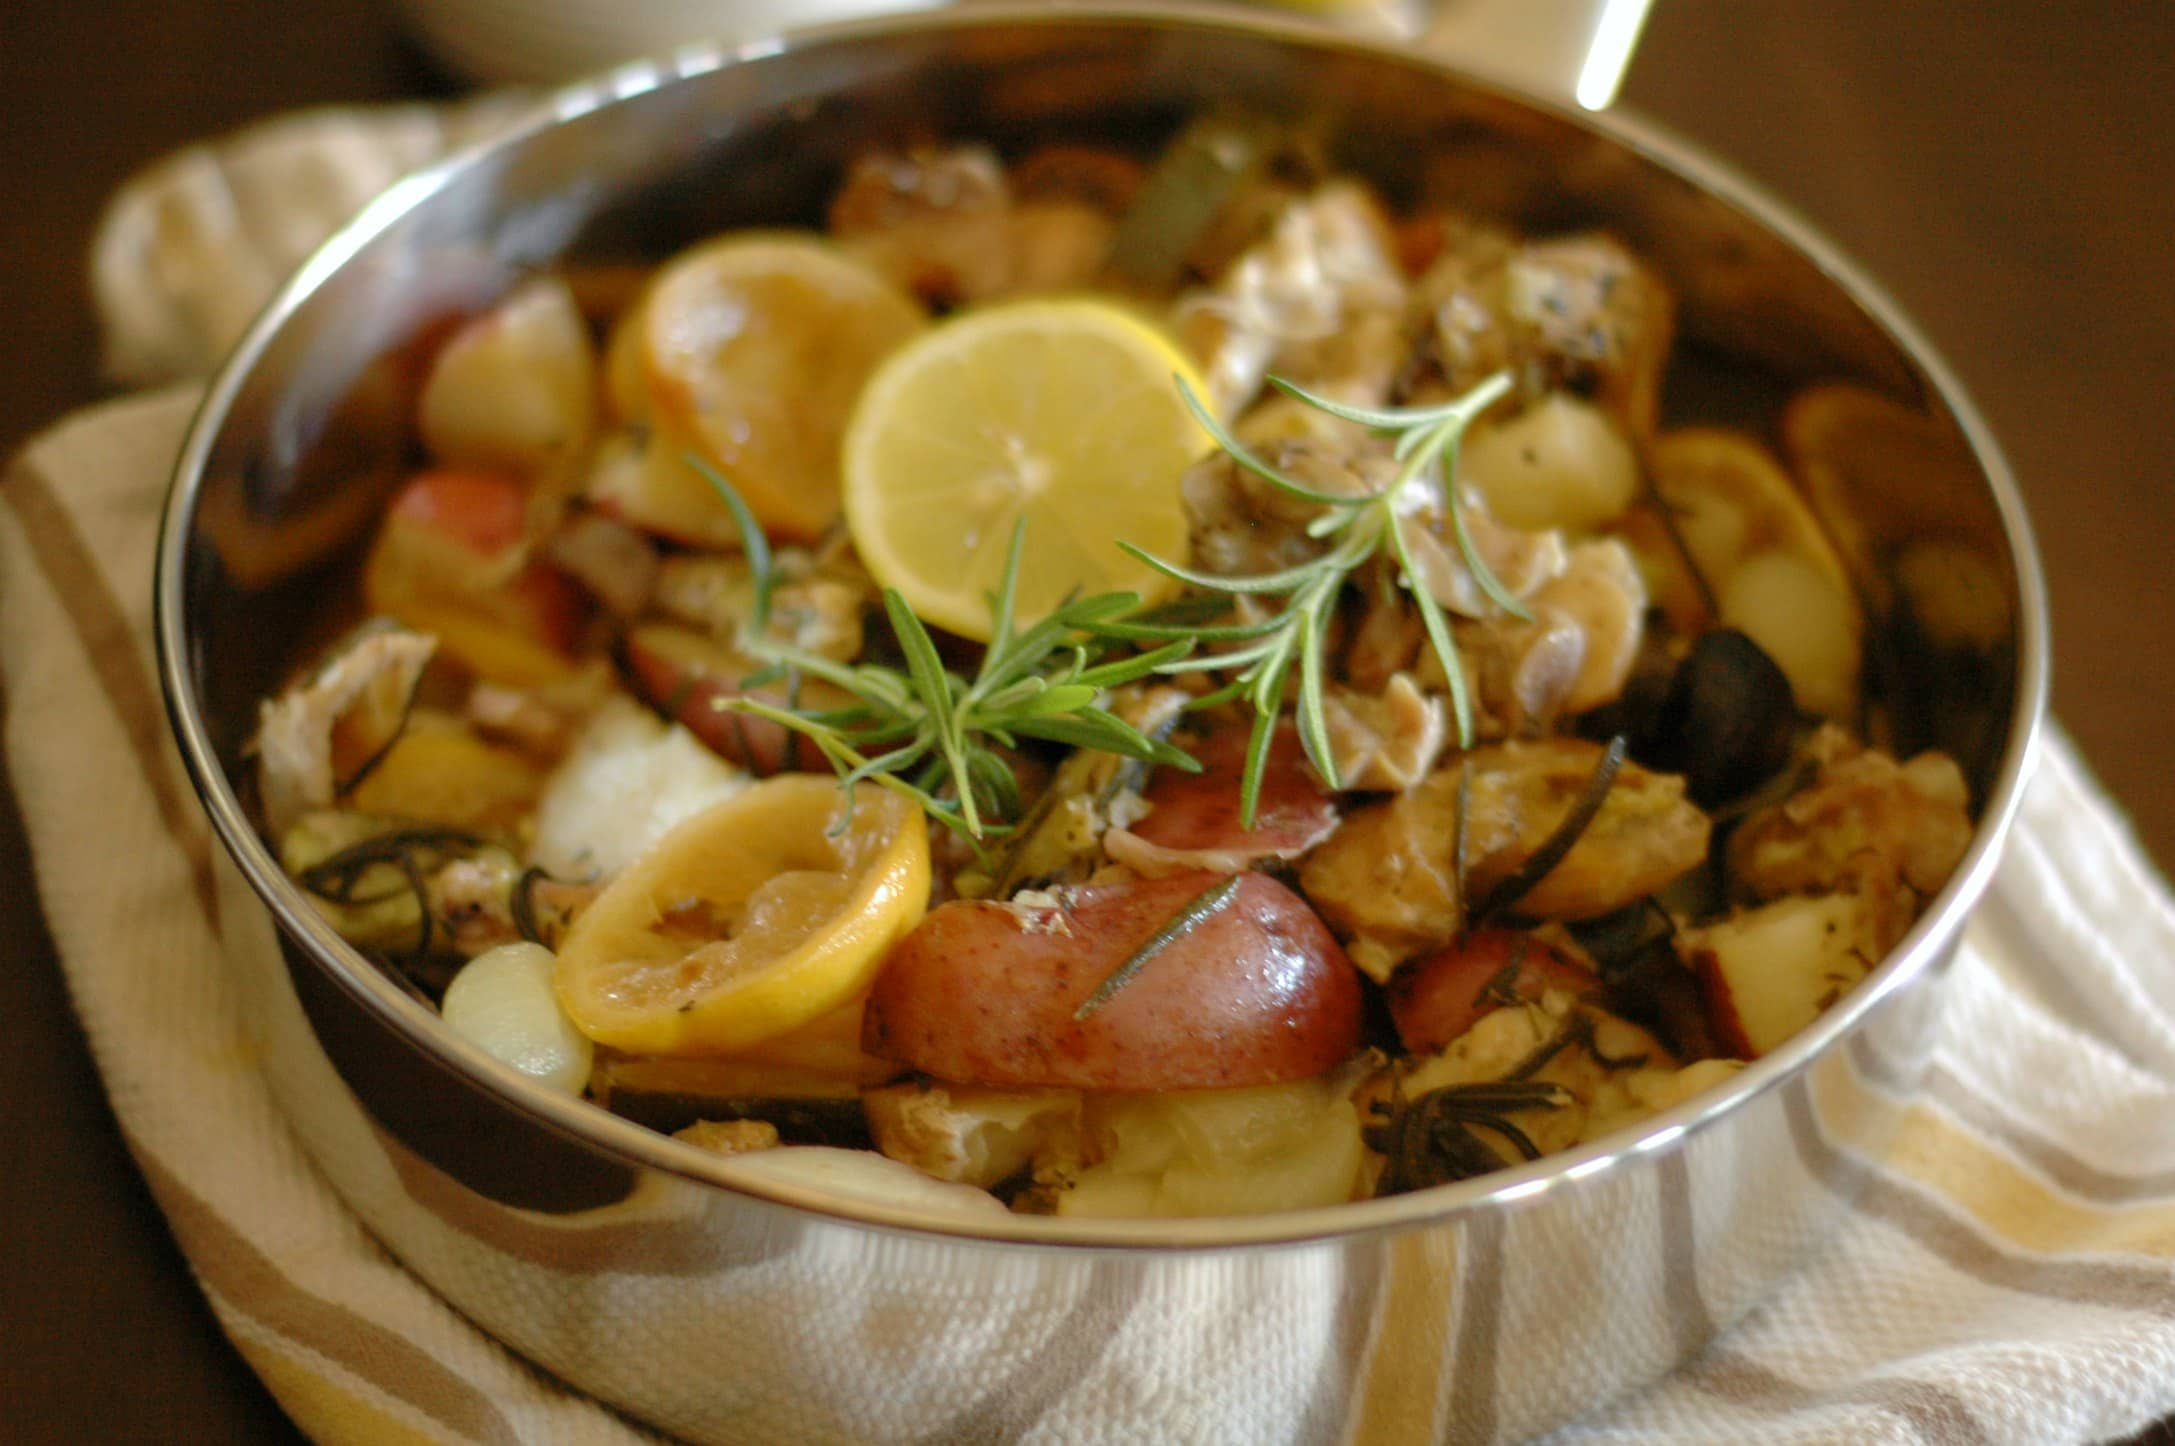 Slow Cooker Lemon Rosemary Chicken with Vegetables